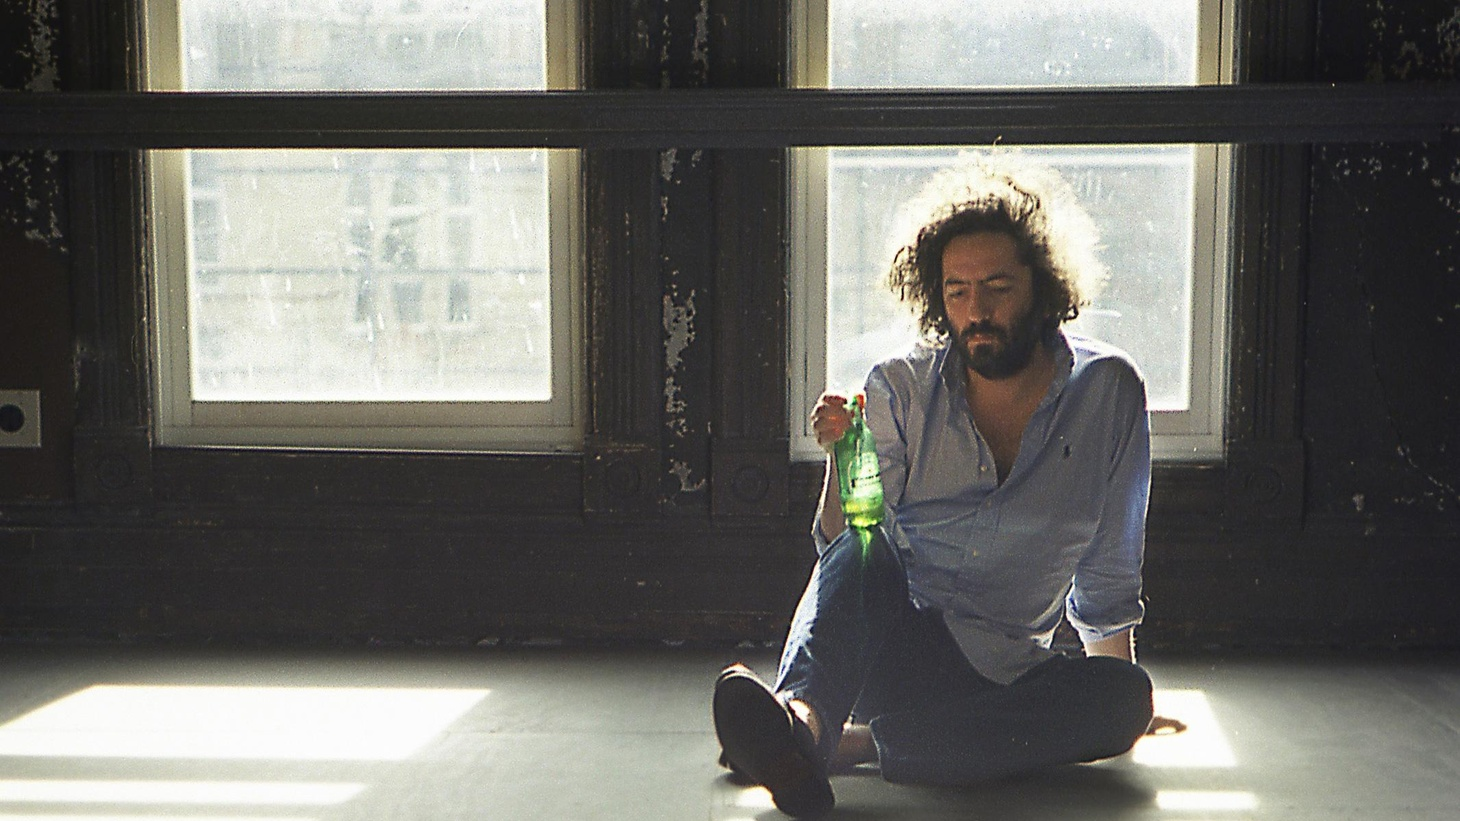 Destroyer's Dan Bejar thought it tiresome to record another record in English, so he turned to the songs of the Spanish rocker Antonio Luque and covered some of his favorites.